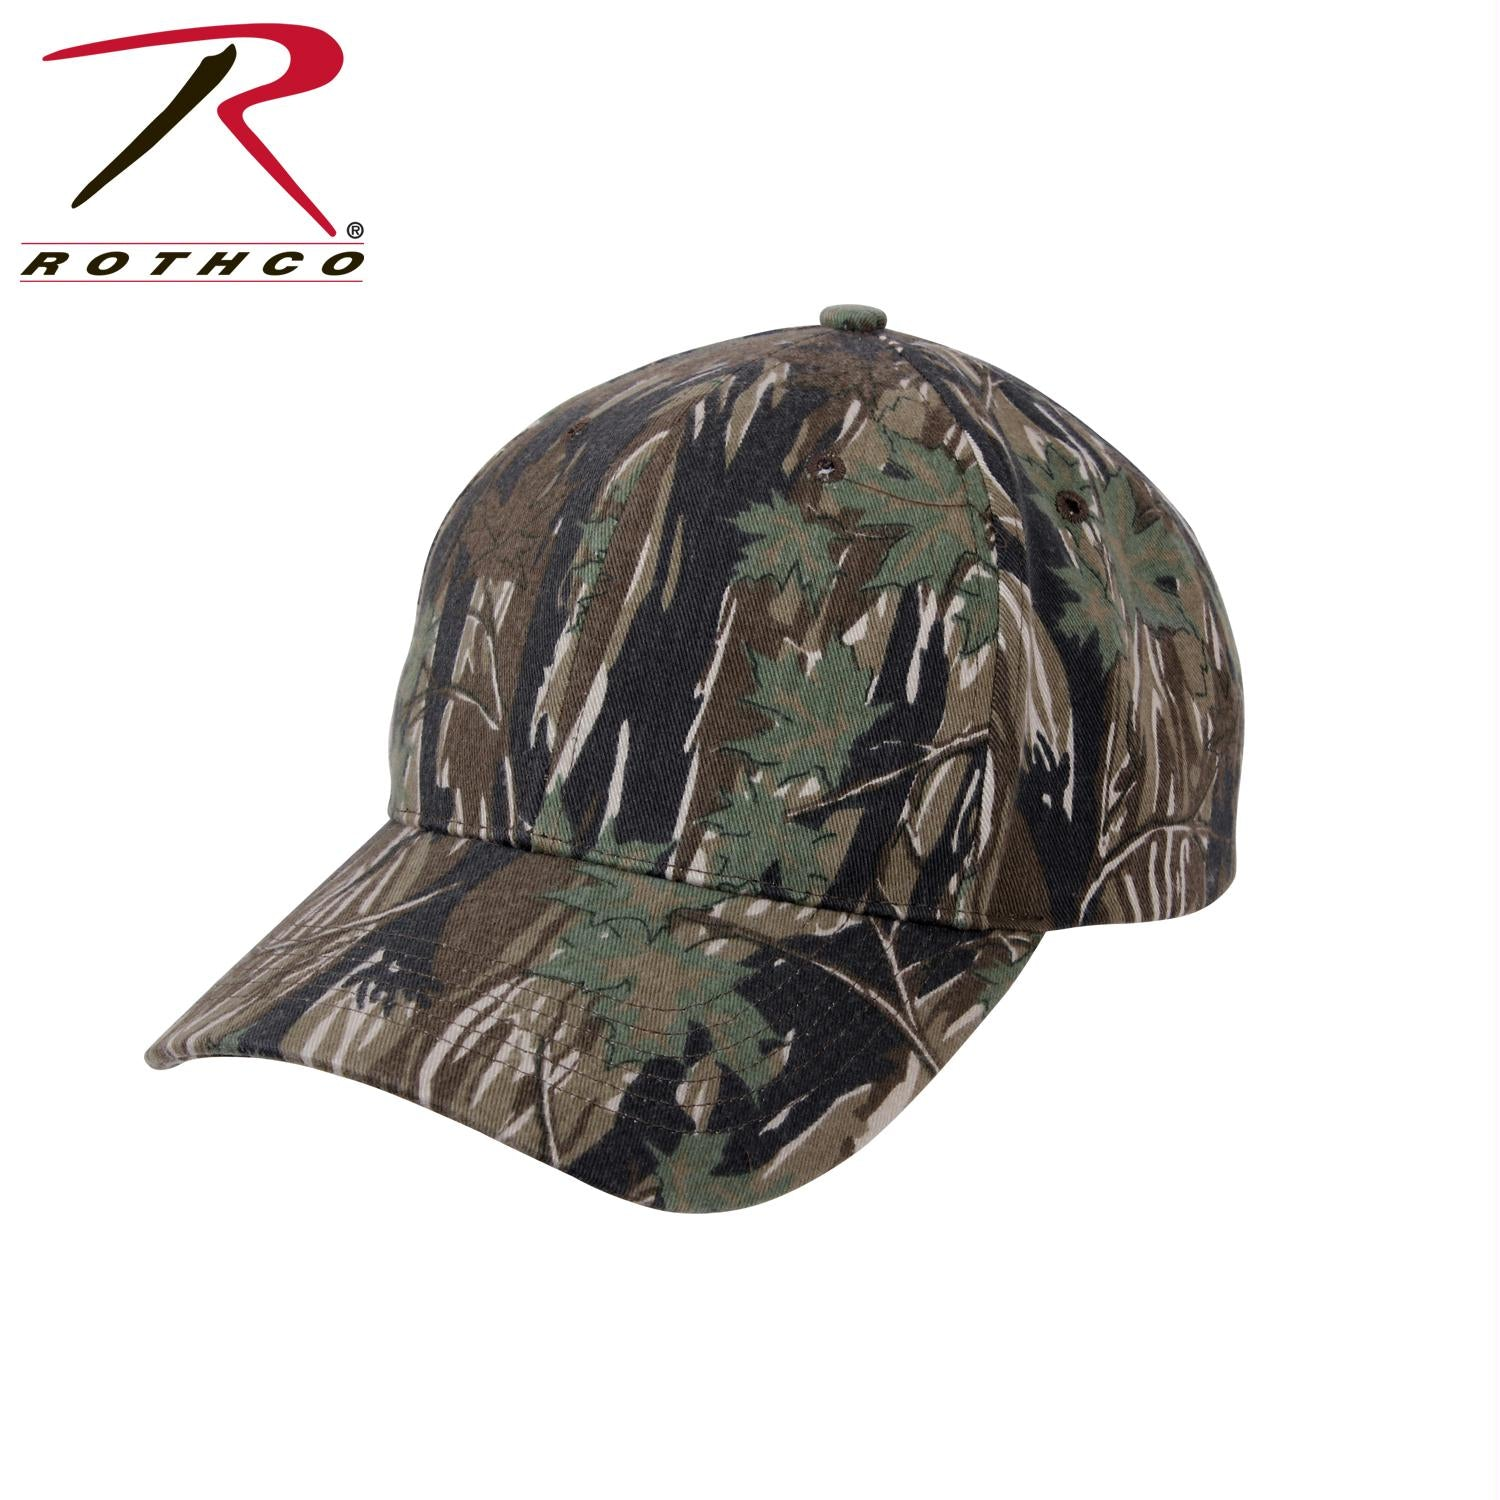 Rothco Supreme Camo Low Profile Cap - Smokey Branch Camo / One Size